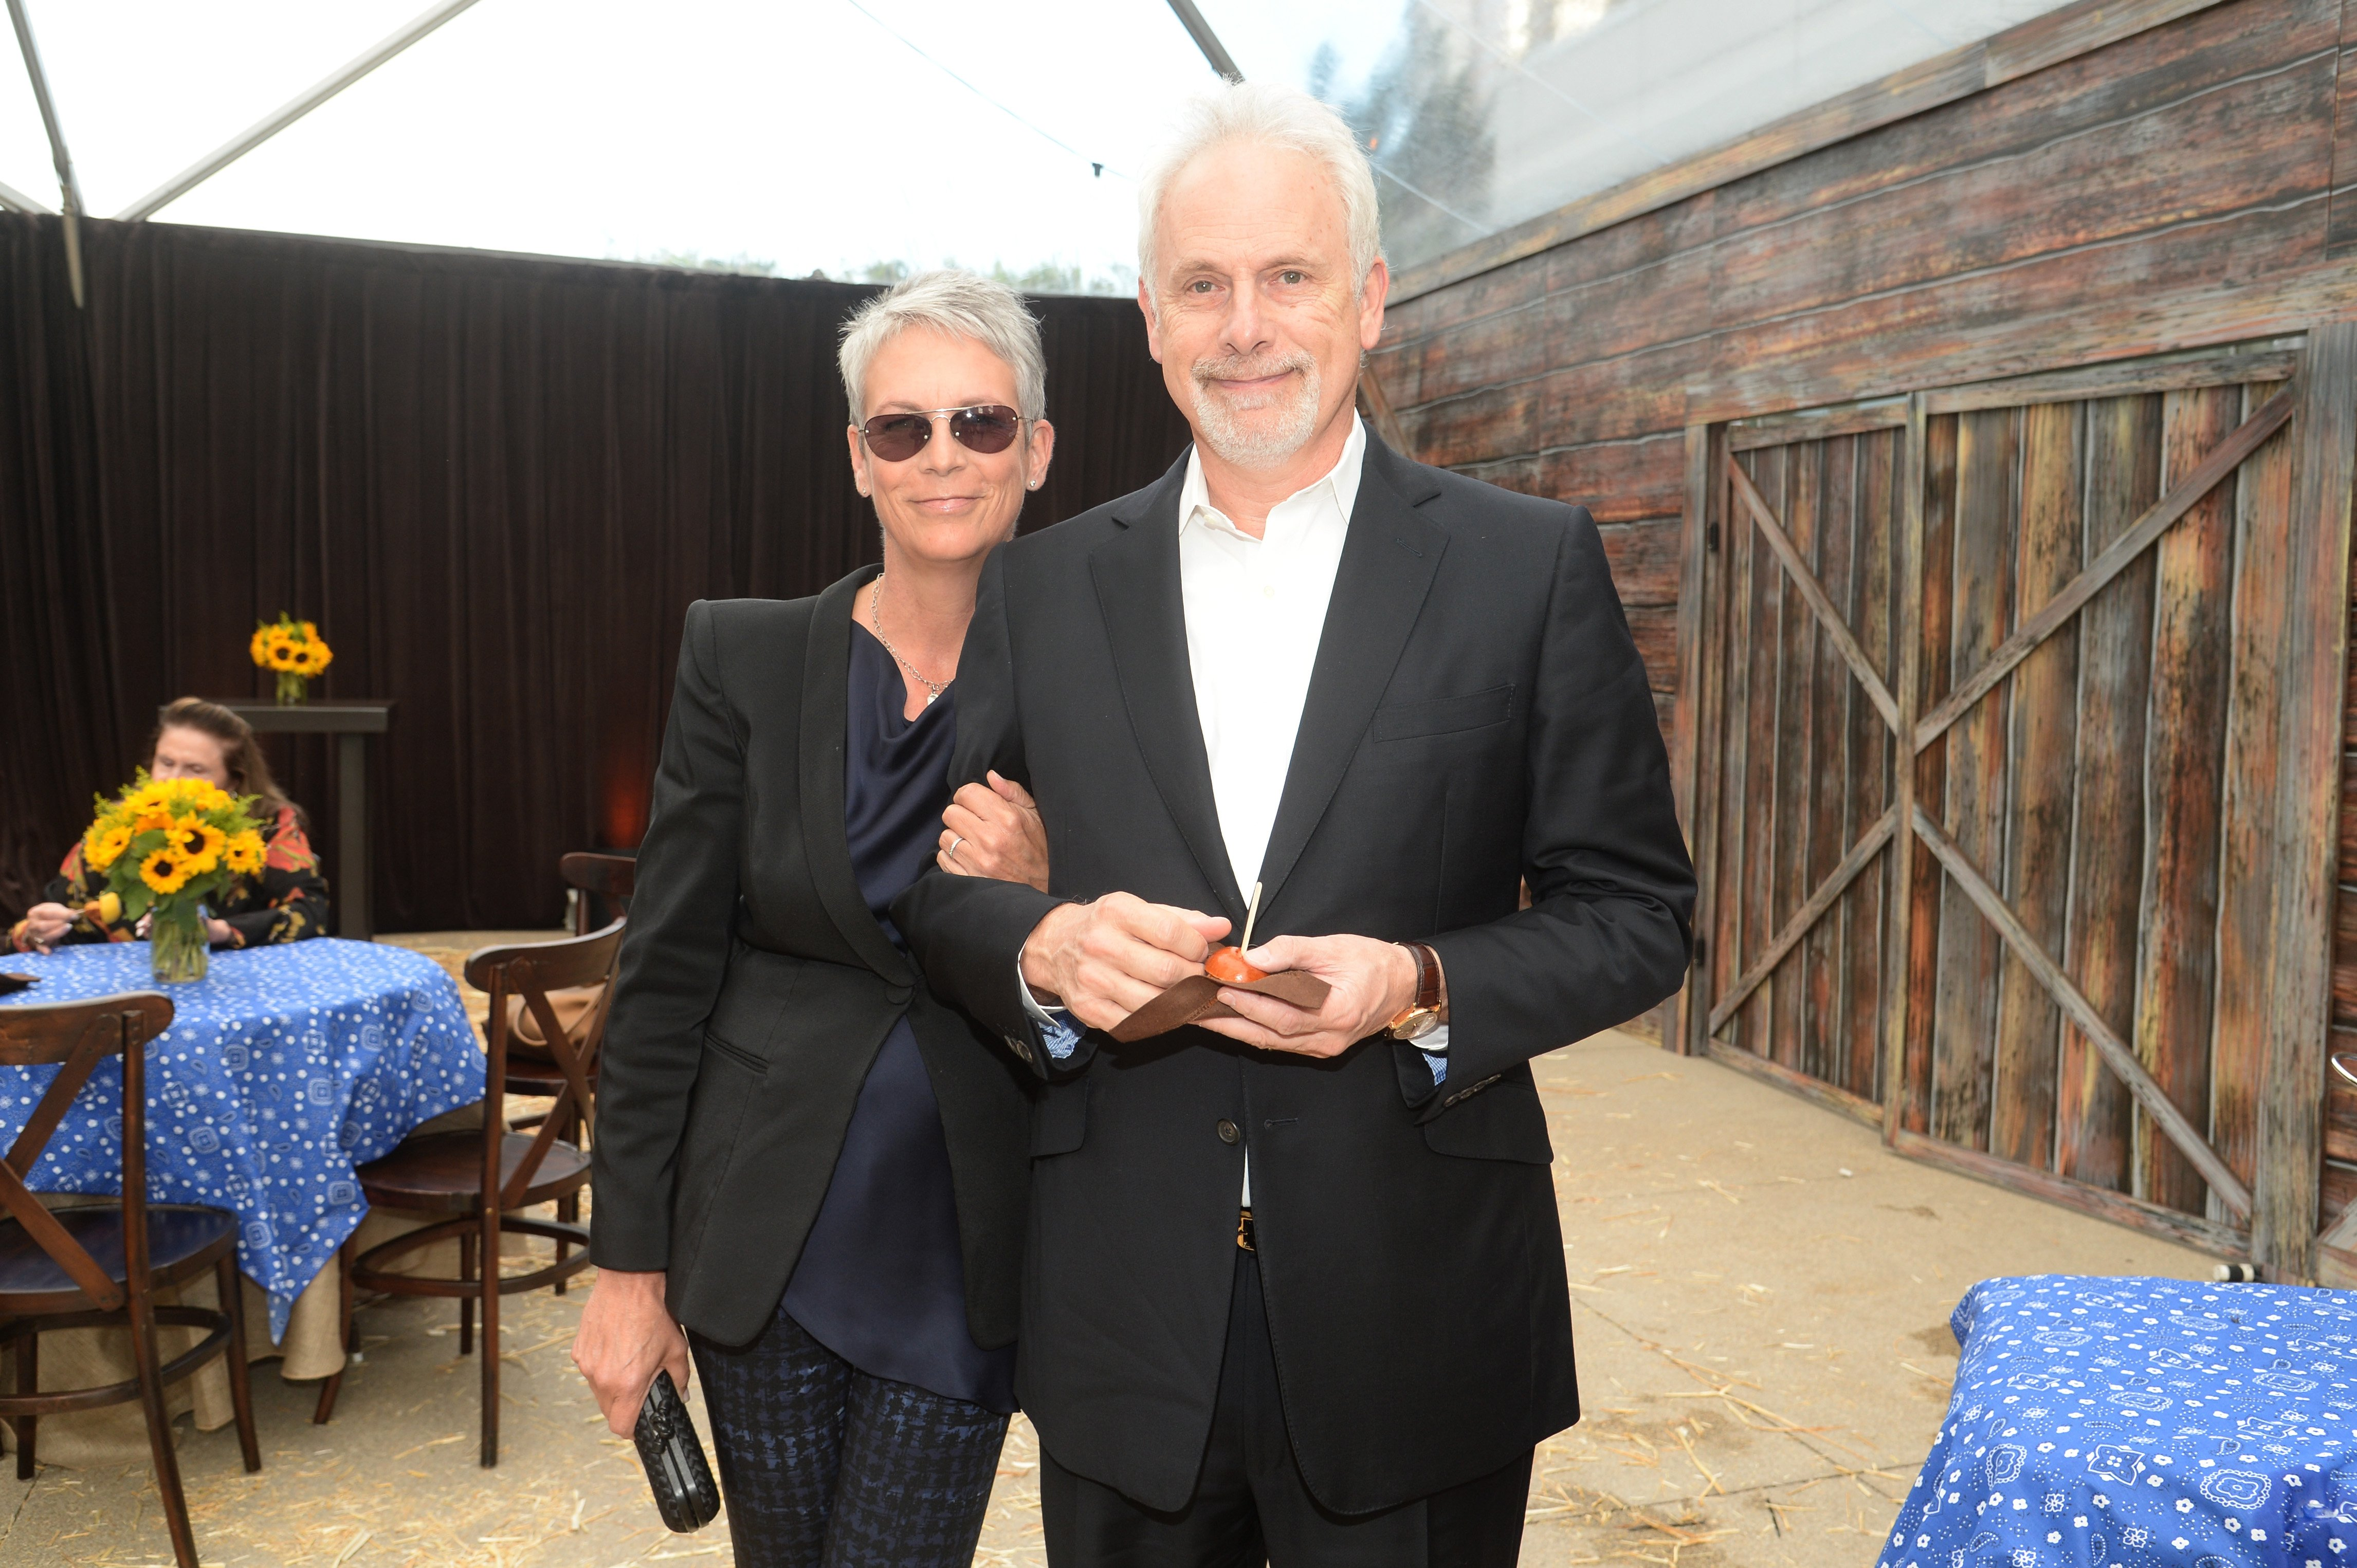 """Jamie Lee Curtis and Christopher Guest attend the Annenberg Space for Photography Opening Celebration for """"Country, Portraits of an American Sound"""" at the Annenberg Space for Photography on May 22, 2014 